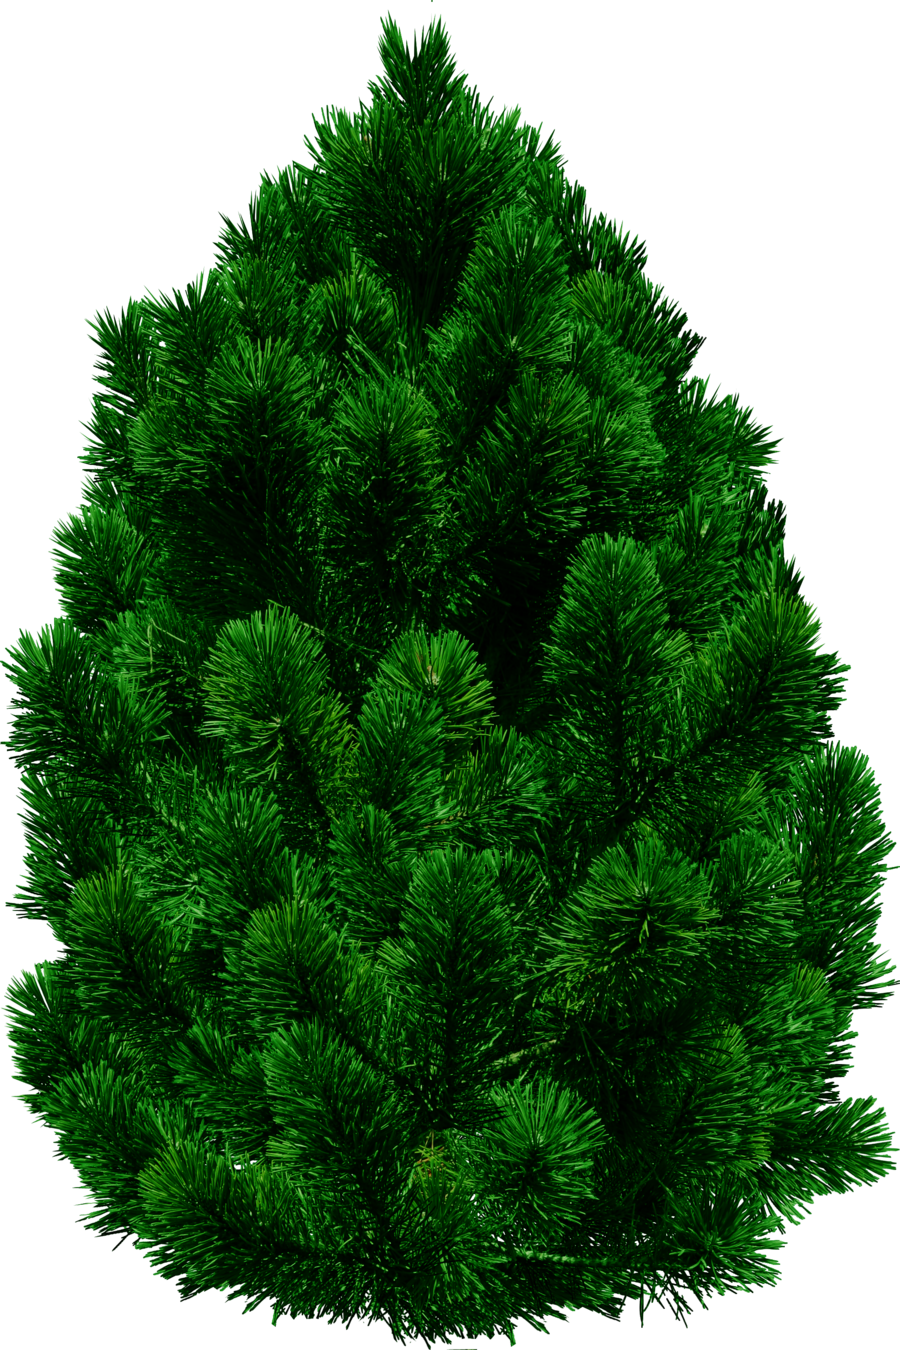 Free download png image. Tree picture